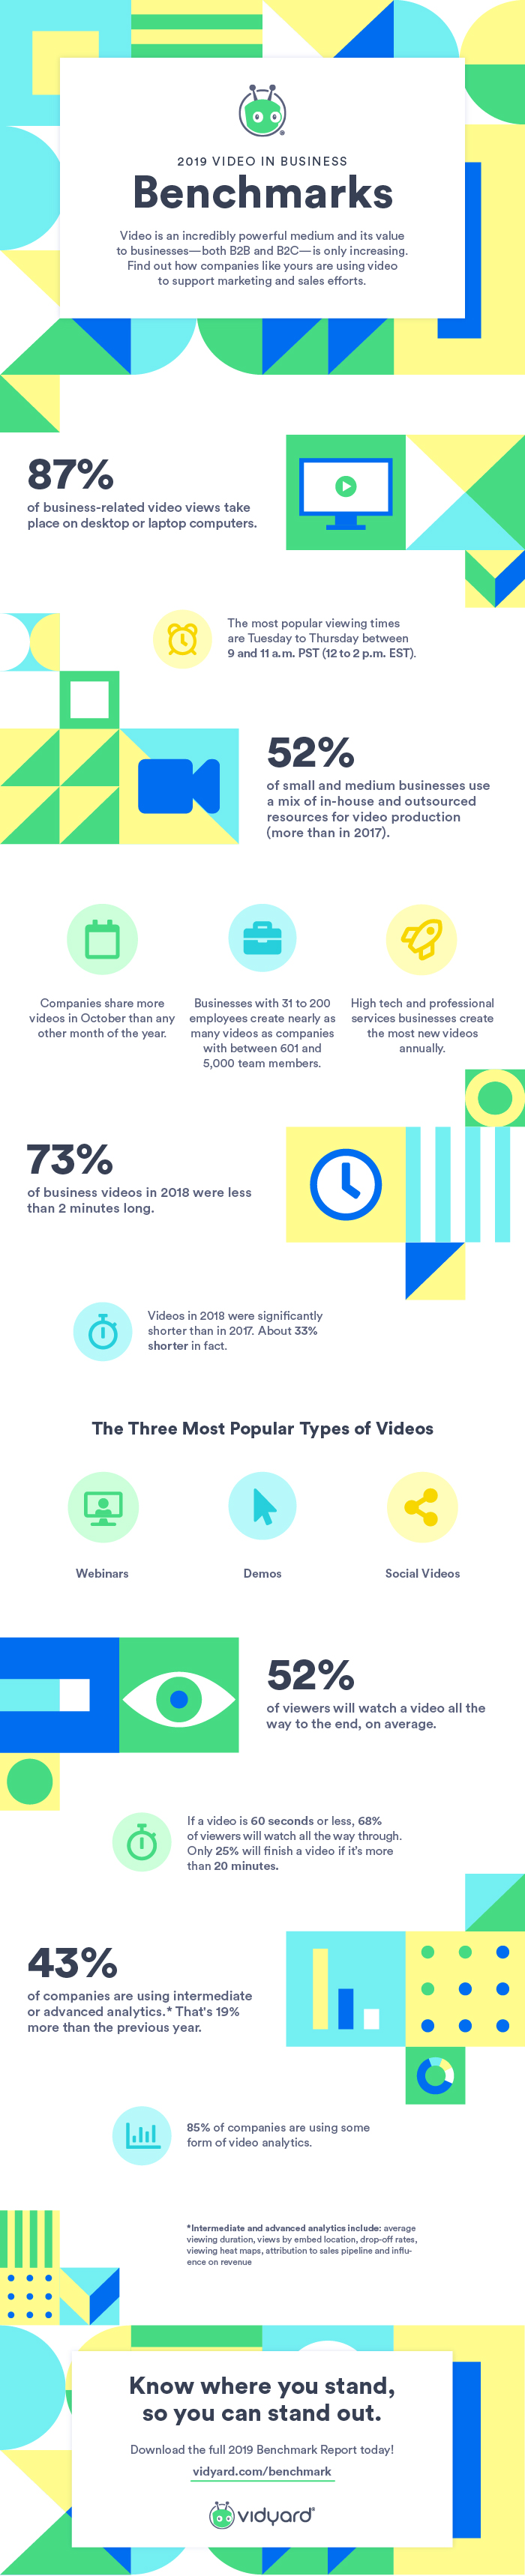 Infographic visualizing takeaways from Vidyard's 2019 Video in Business Benchmark Report [click image to view PDF]